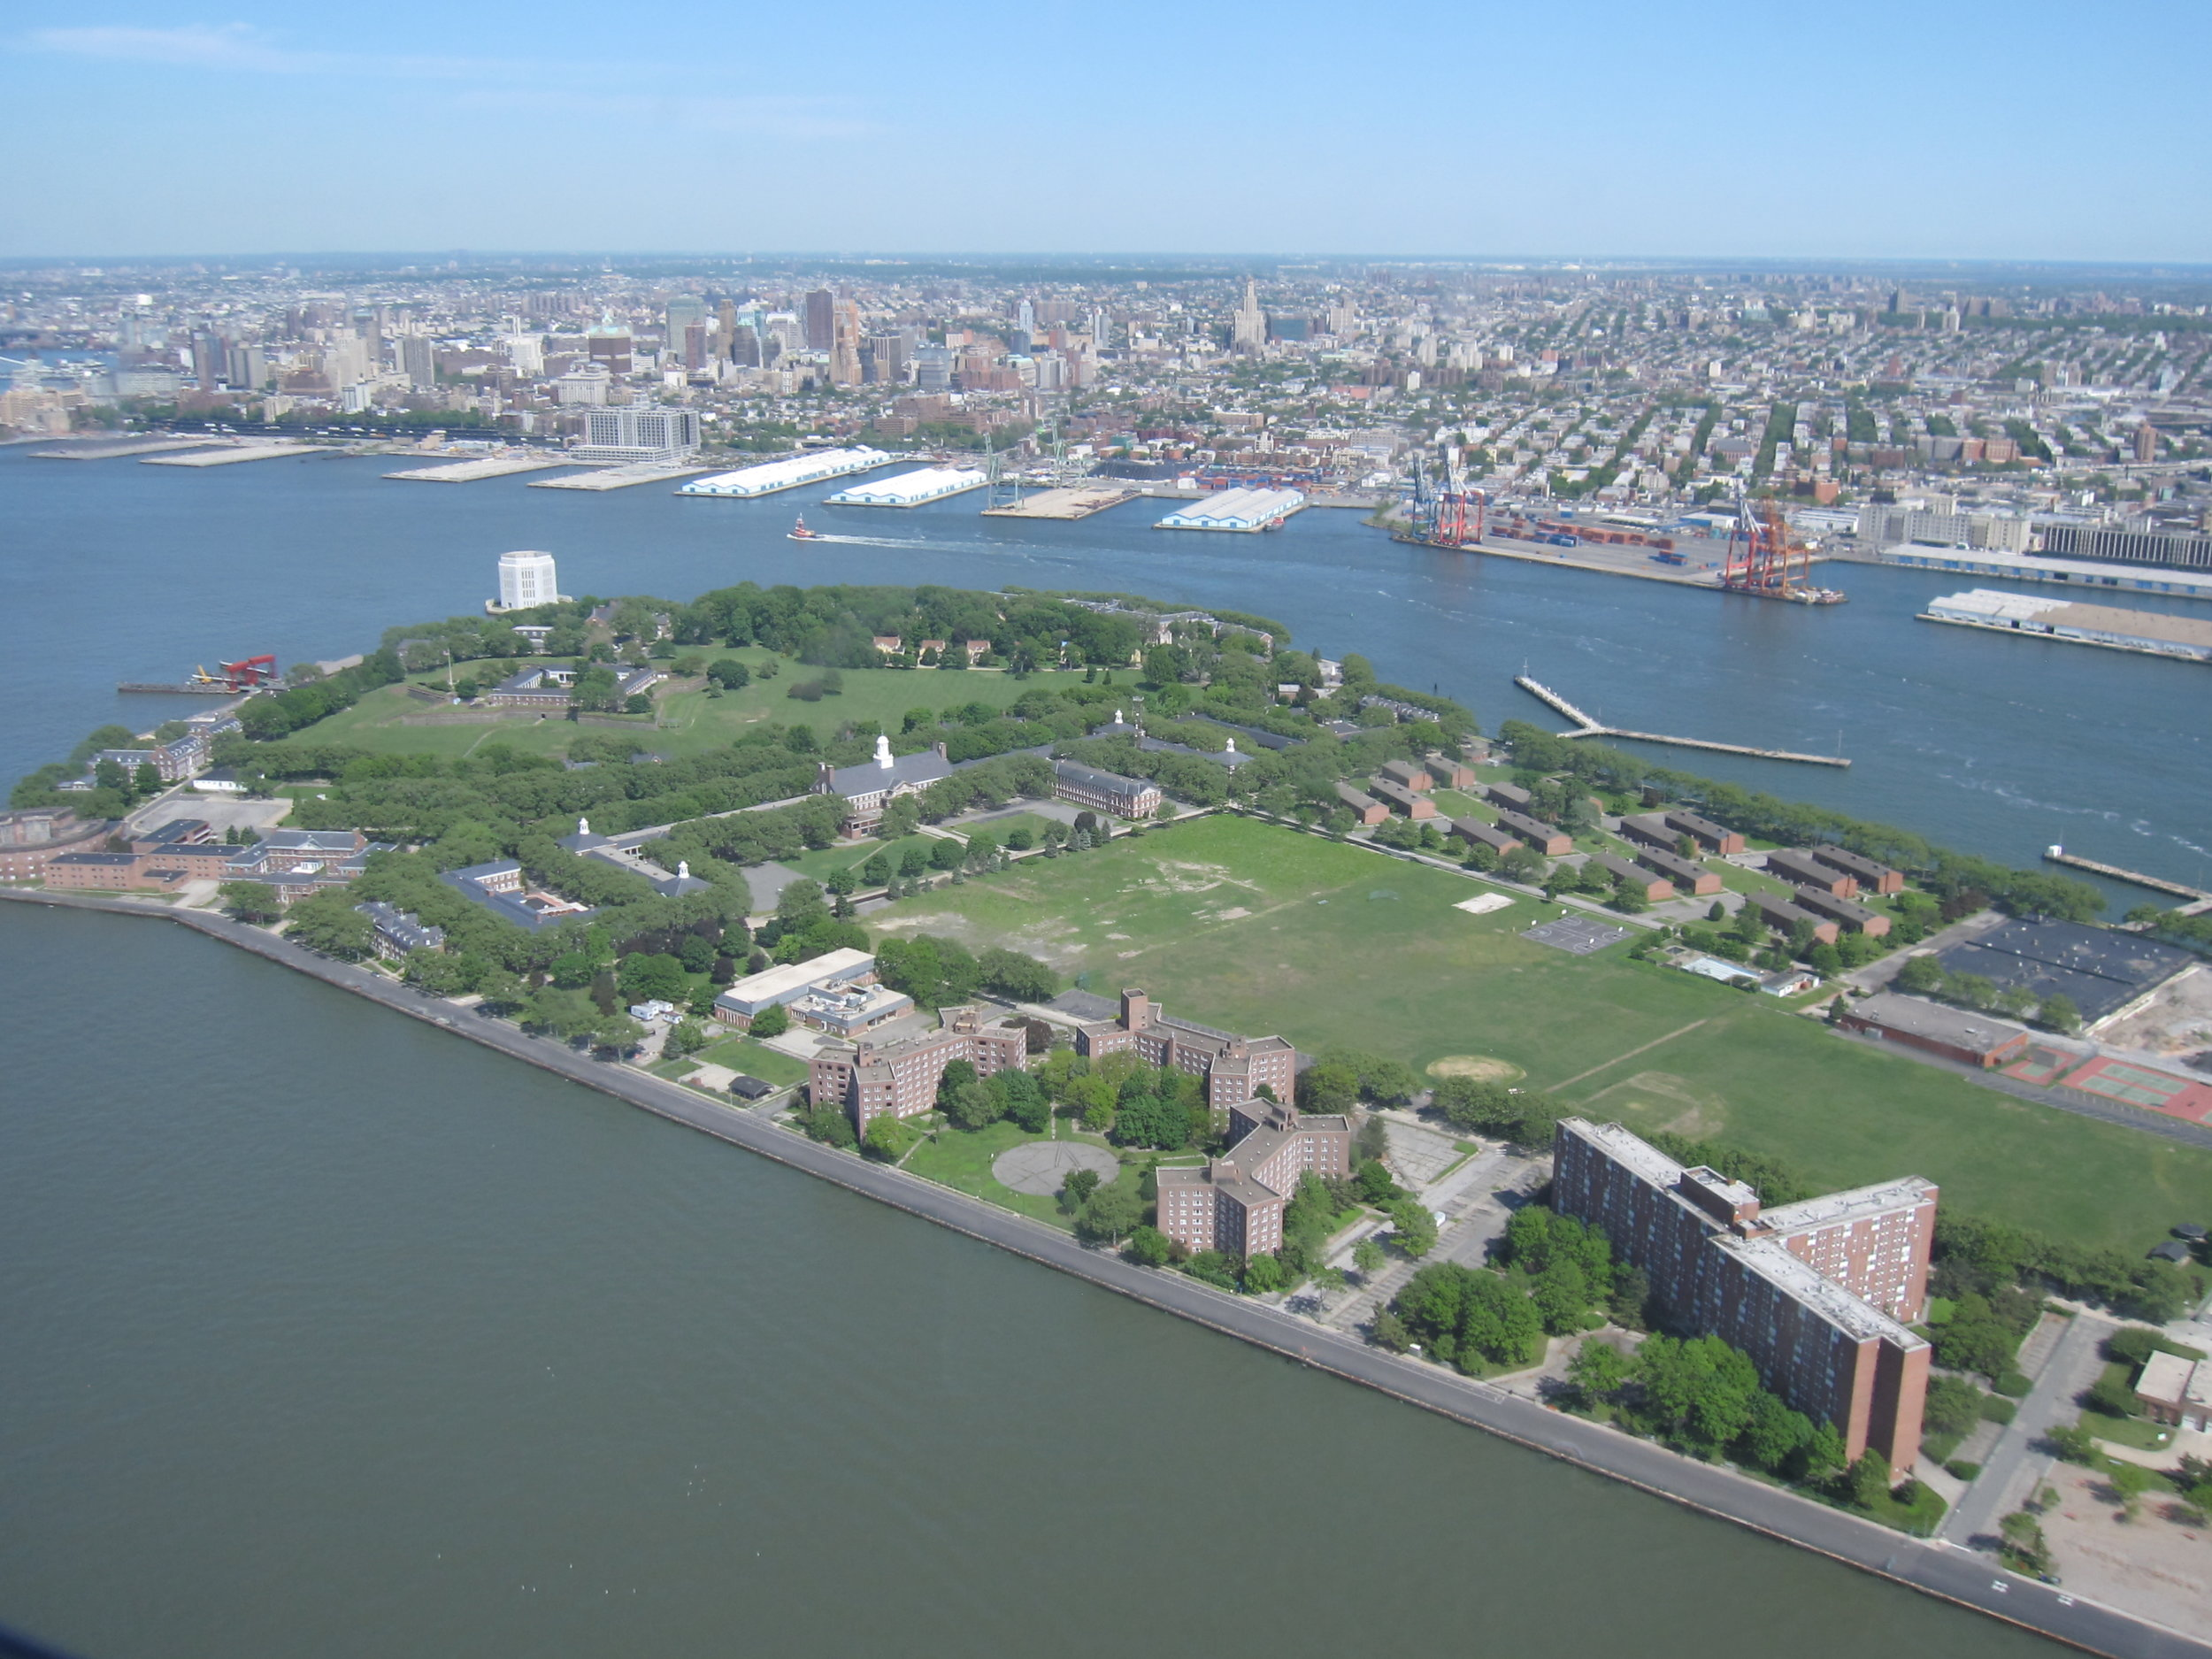 Governors_Island_001.jpg